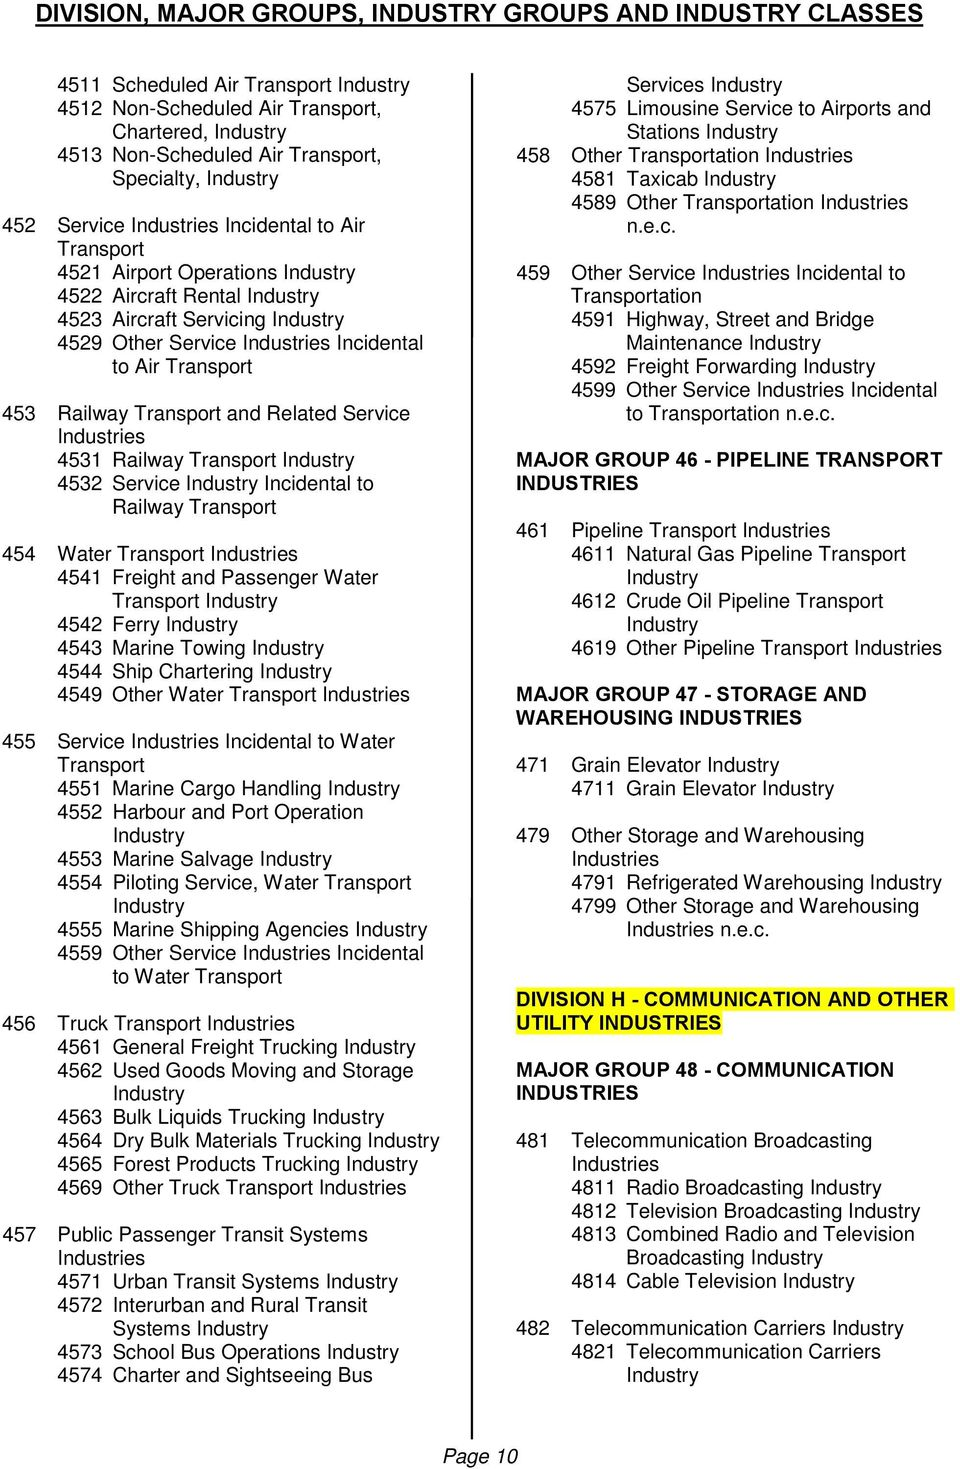 Transport 4541 Freight and Passenger Water Transport 4542 Ferry 4543 Marine Towing 4544 Ship Chartering 4549 Other Water Transport 455 Service Incidental to Water Transport 4551 Marine Cargo Handling